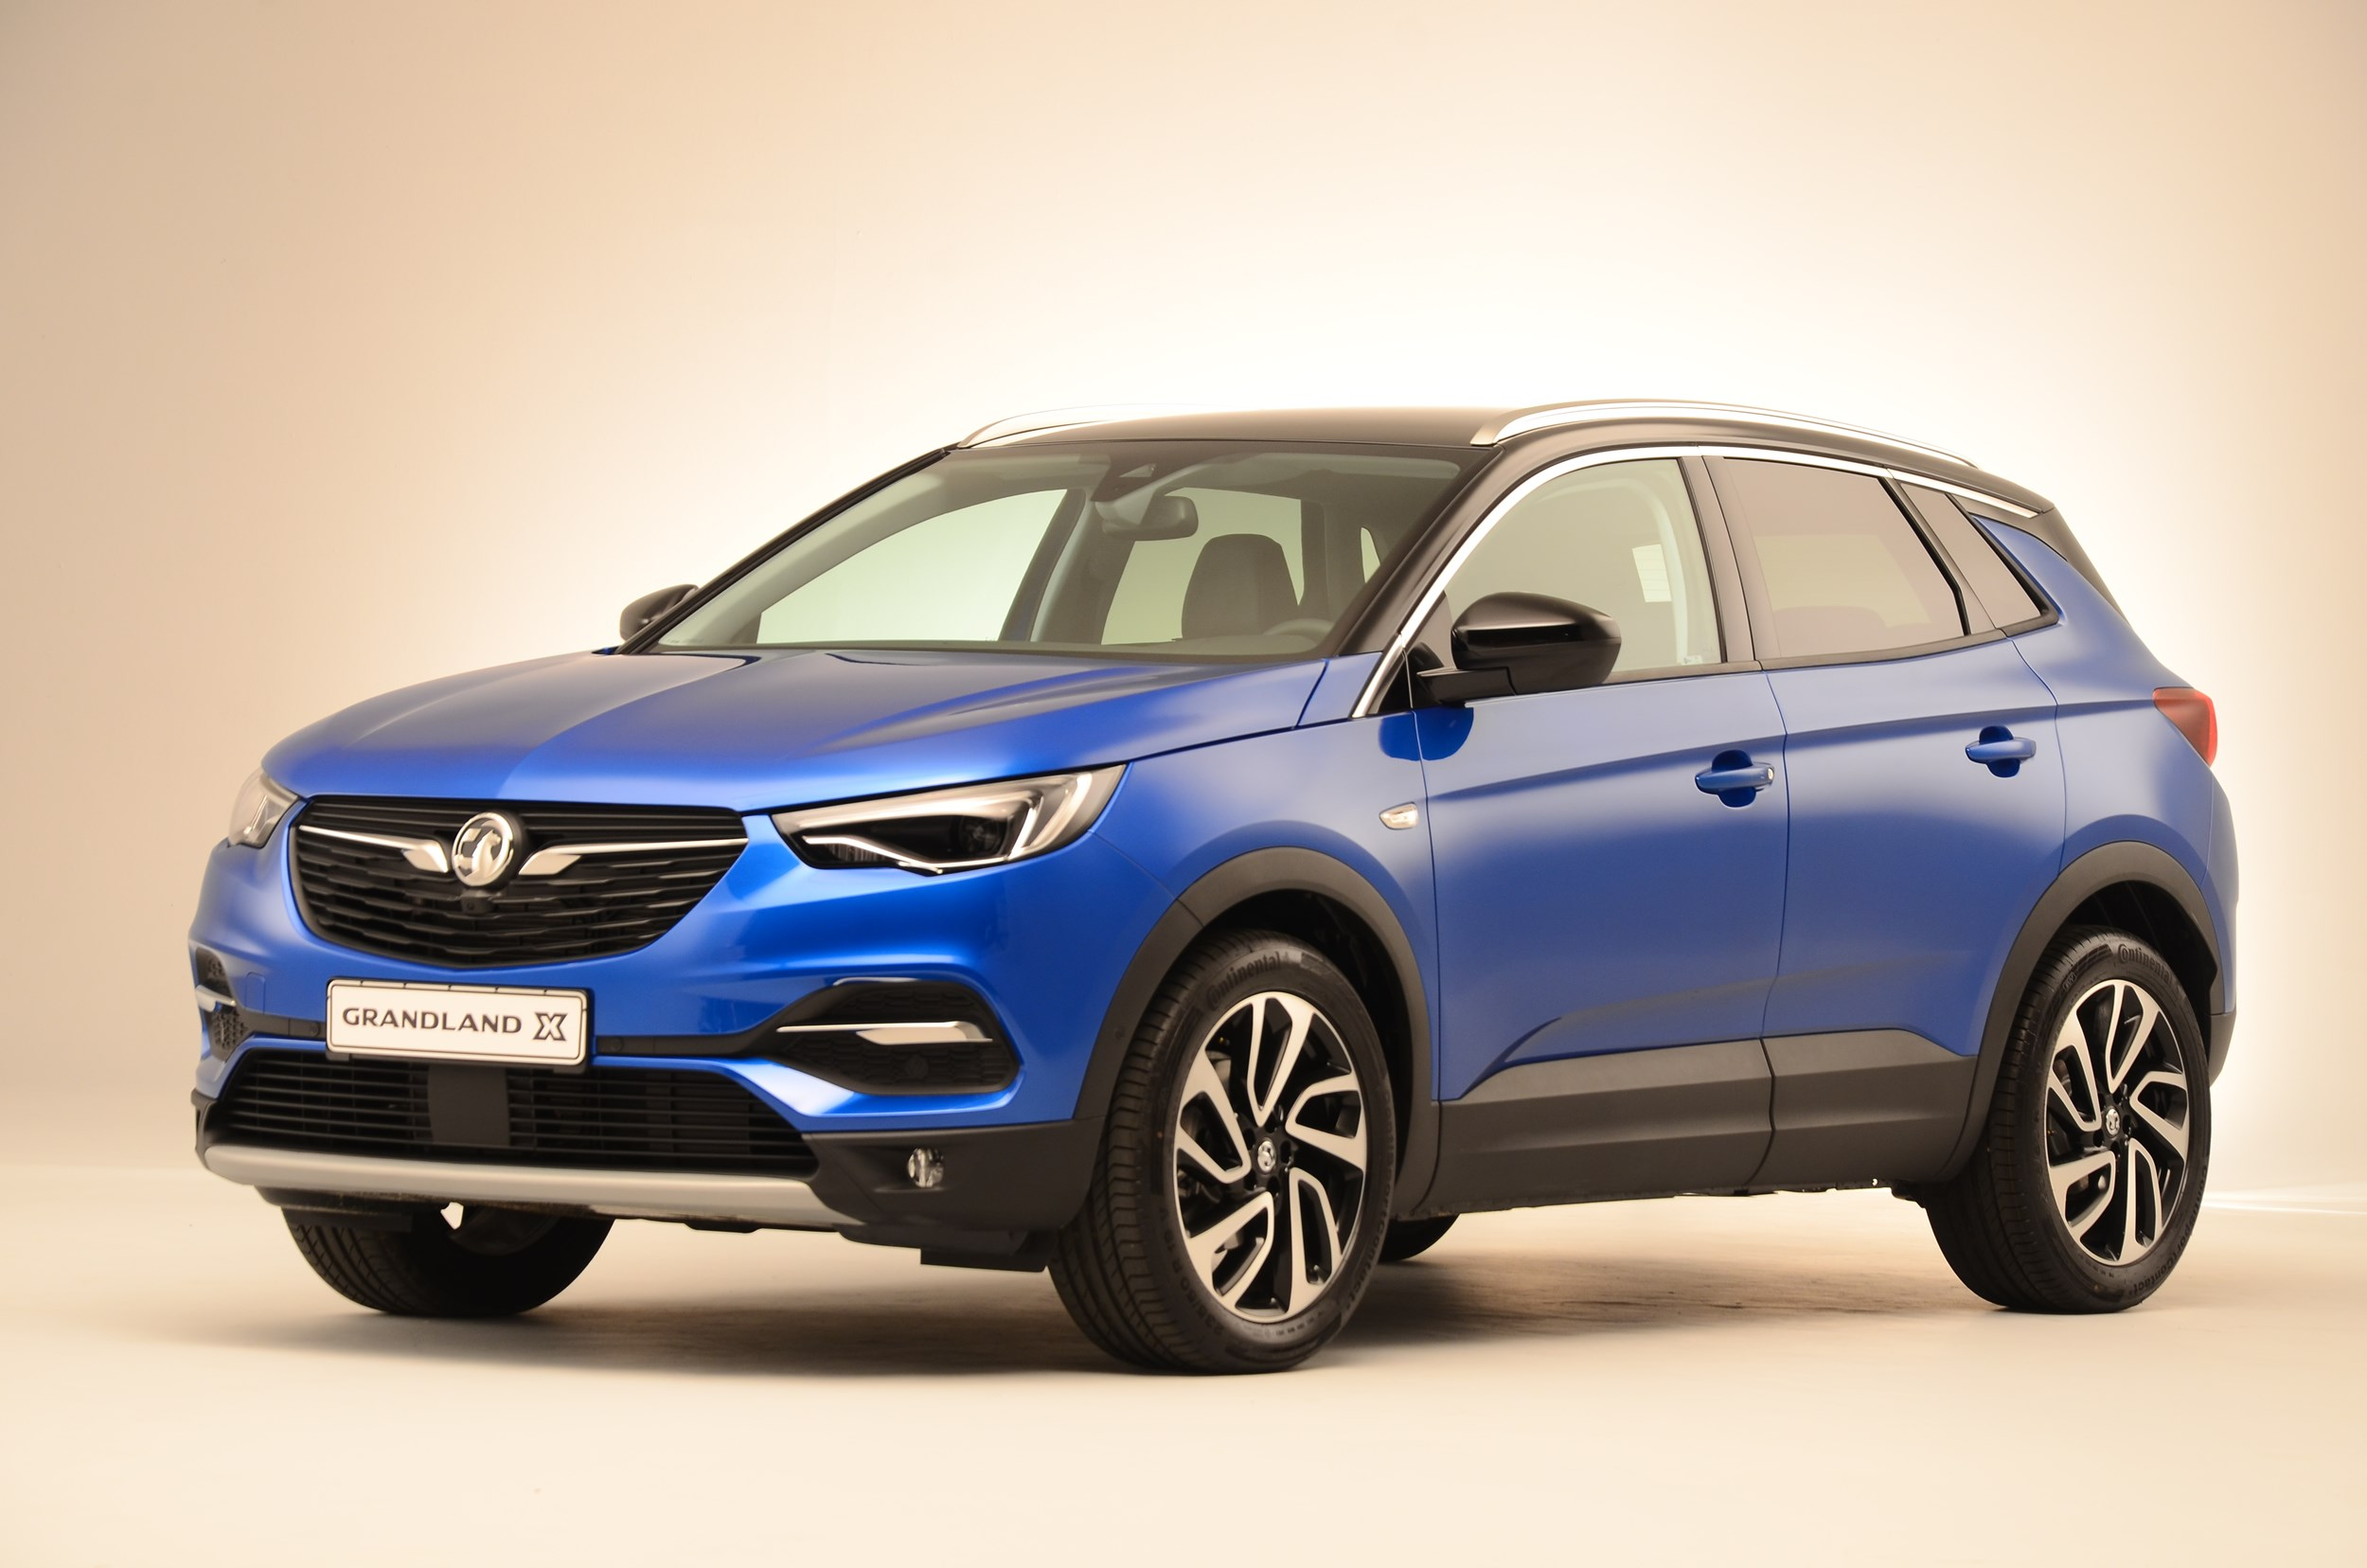 preview vauxhall grandland x prices specs and co2 emissions manufacturer news. Black Bedroom Furniture Sets. Home Design Ideas